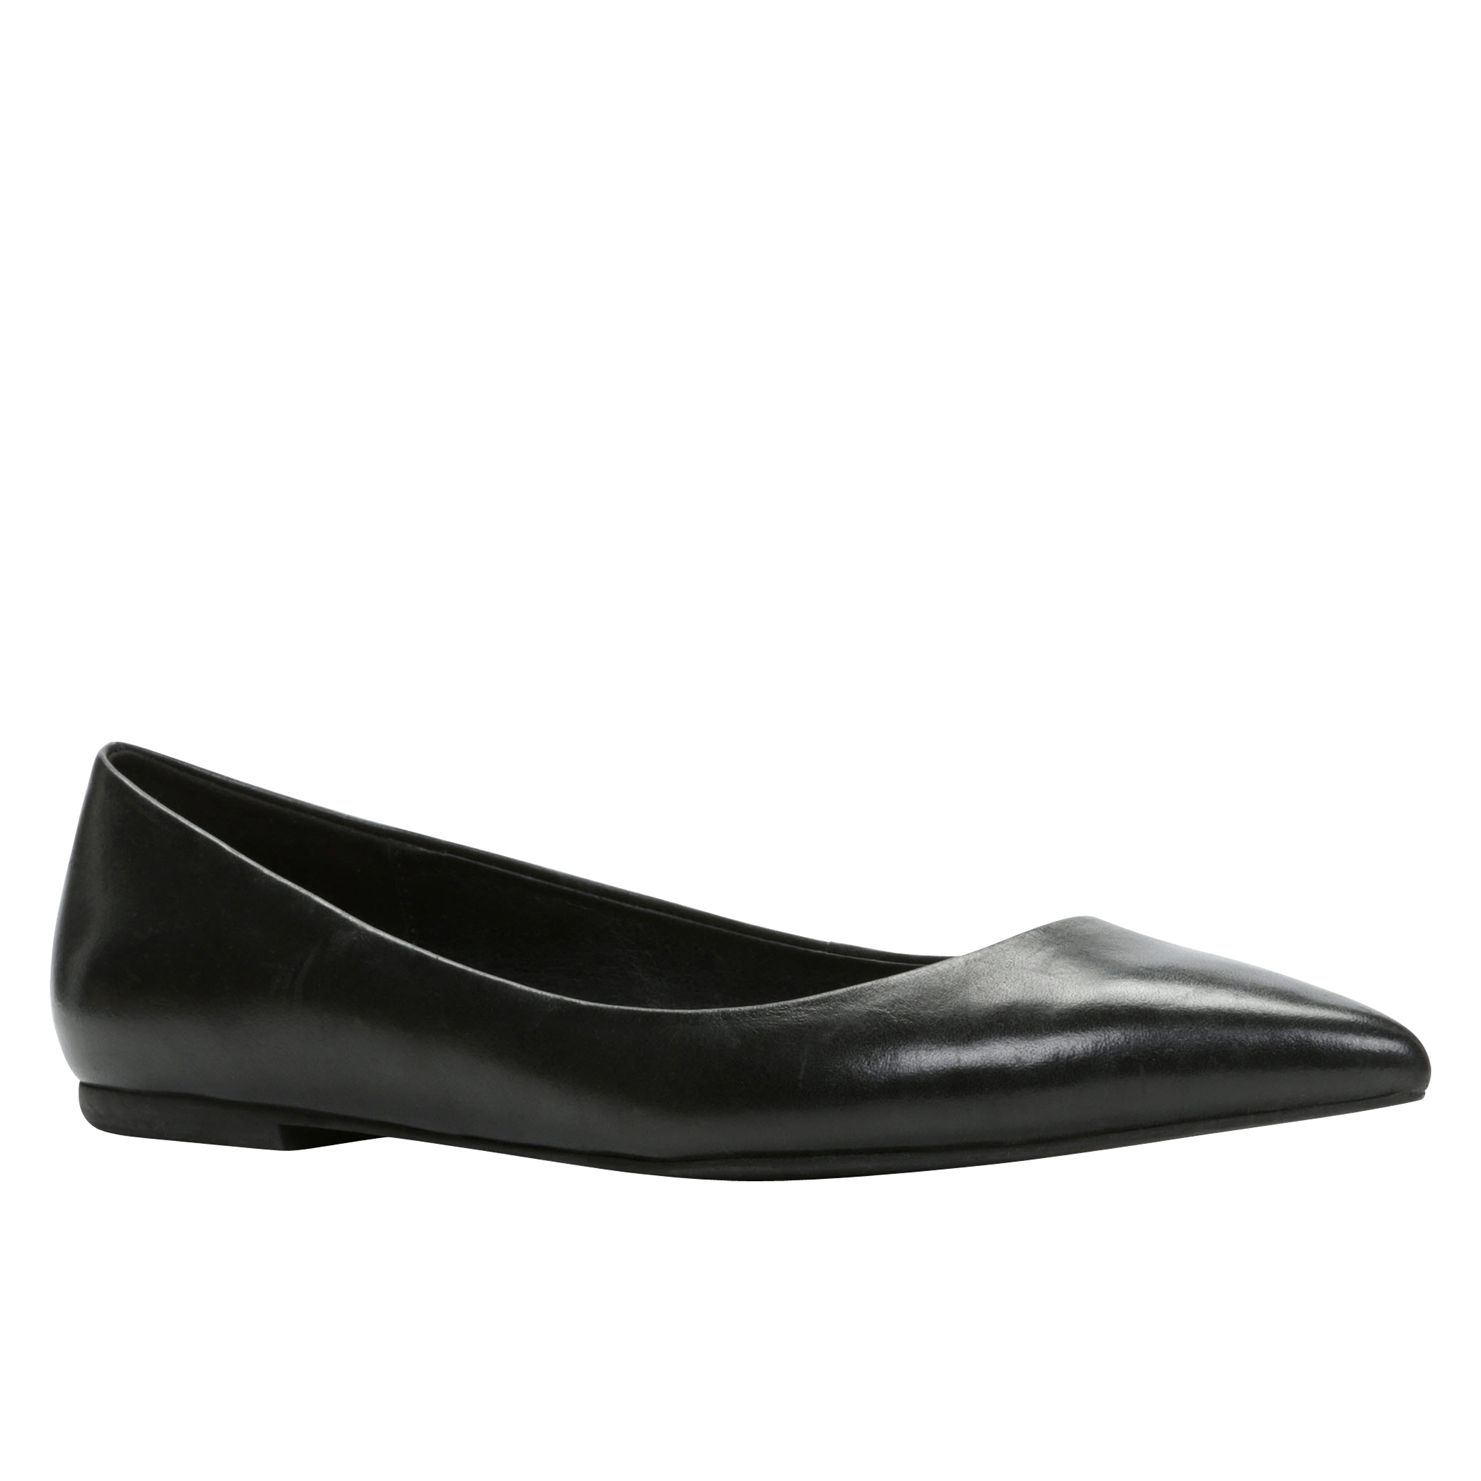 Cadaewet pointed toe pump shoes